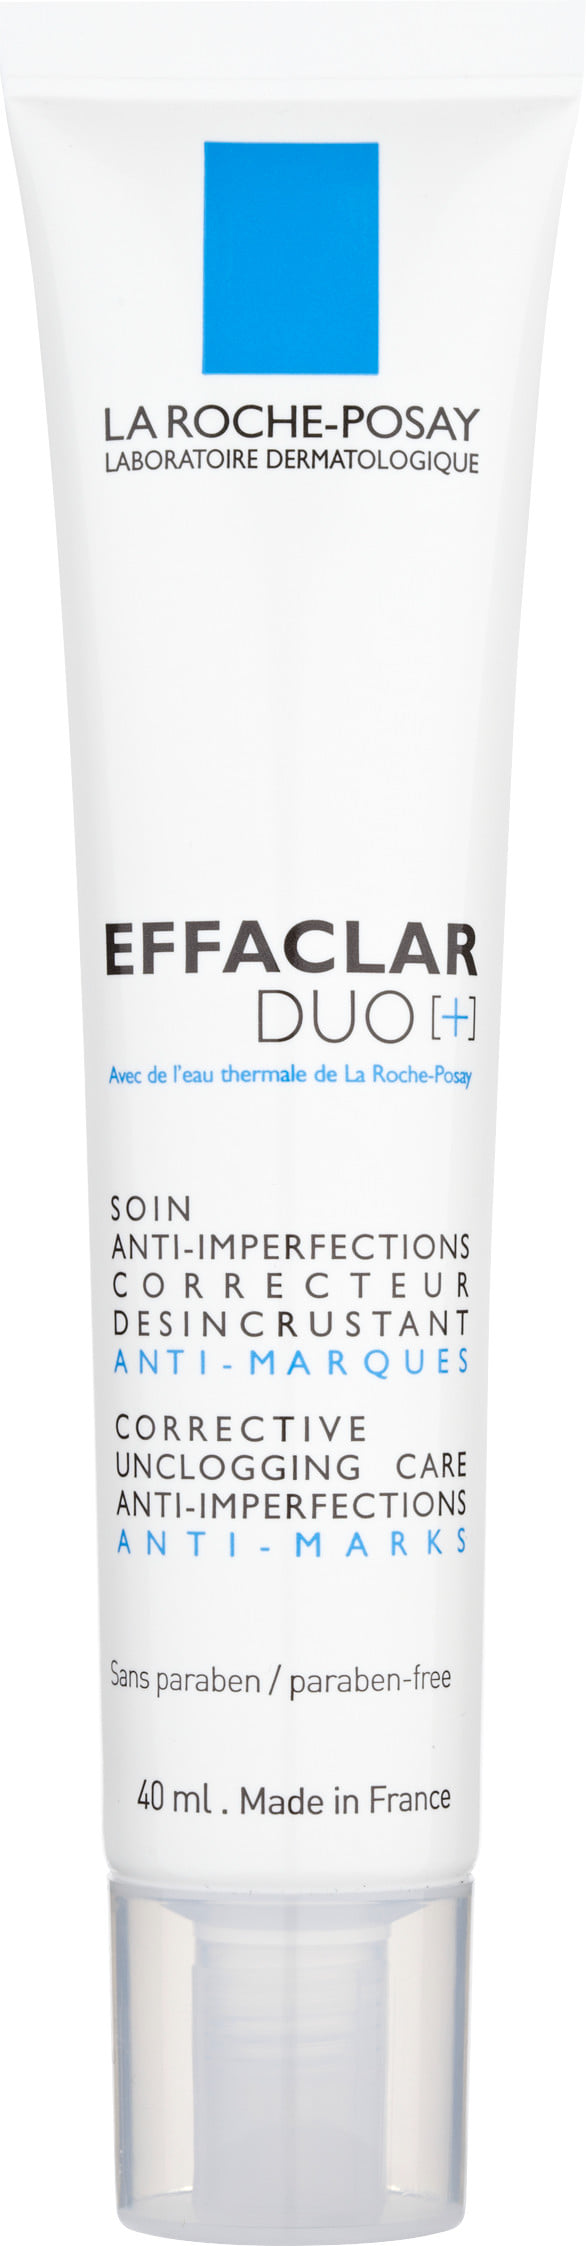 La Roche Posay Effaclar Duo 40ml Tlc